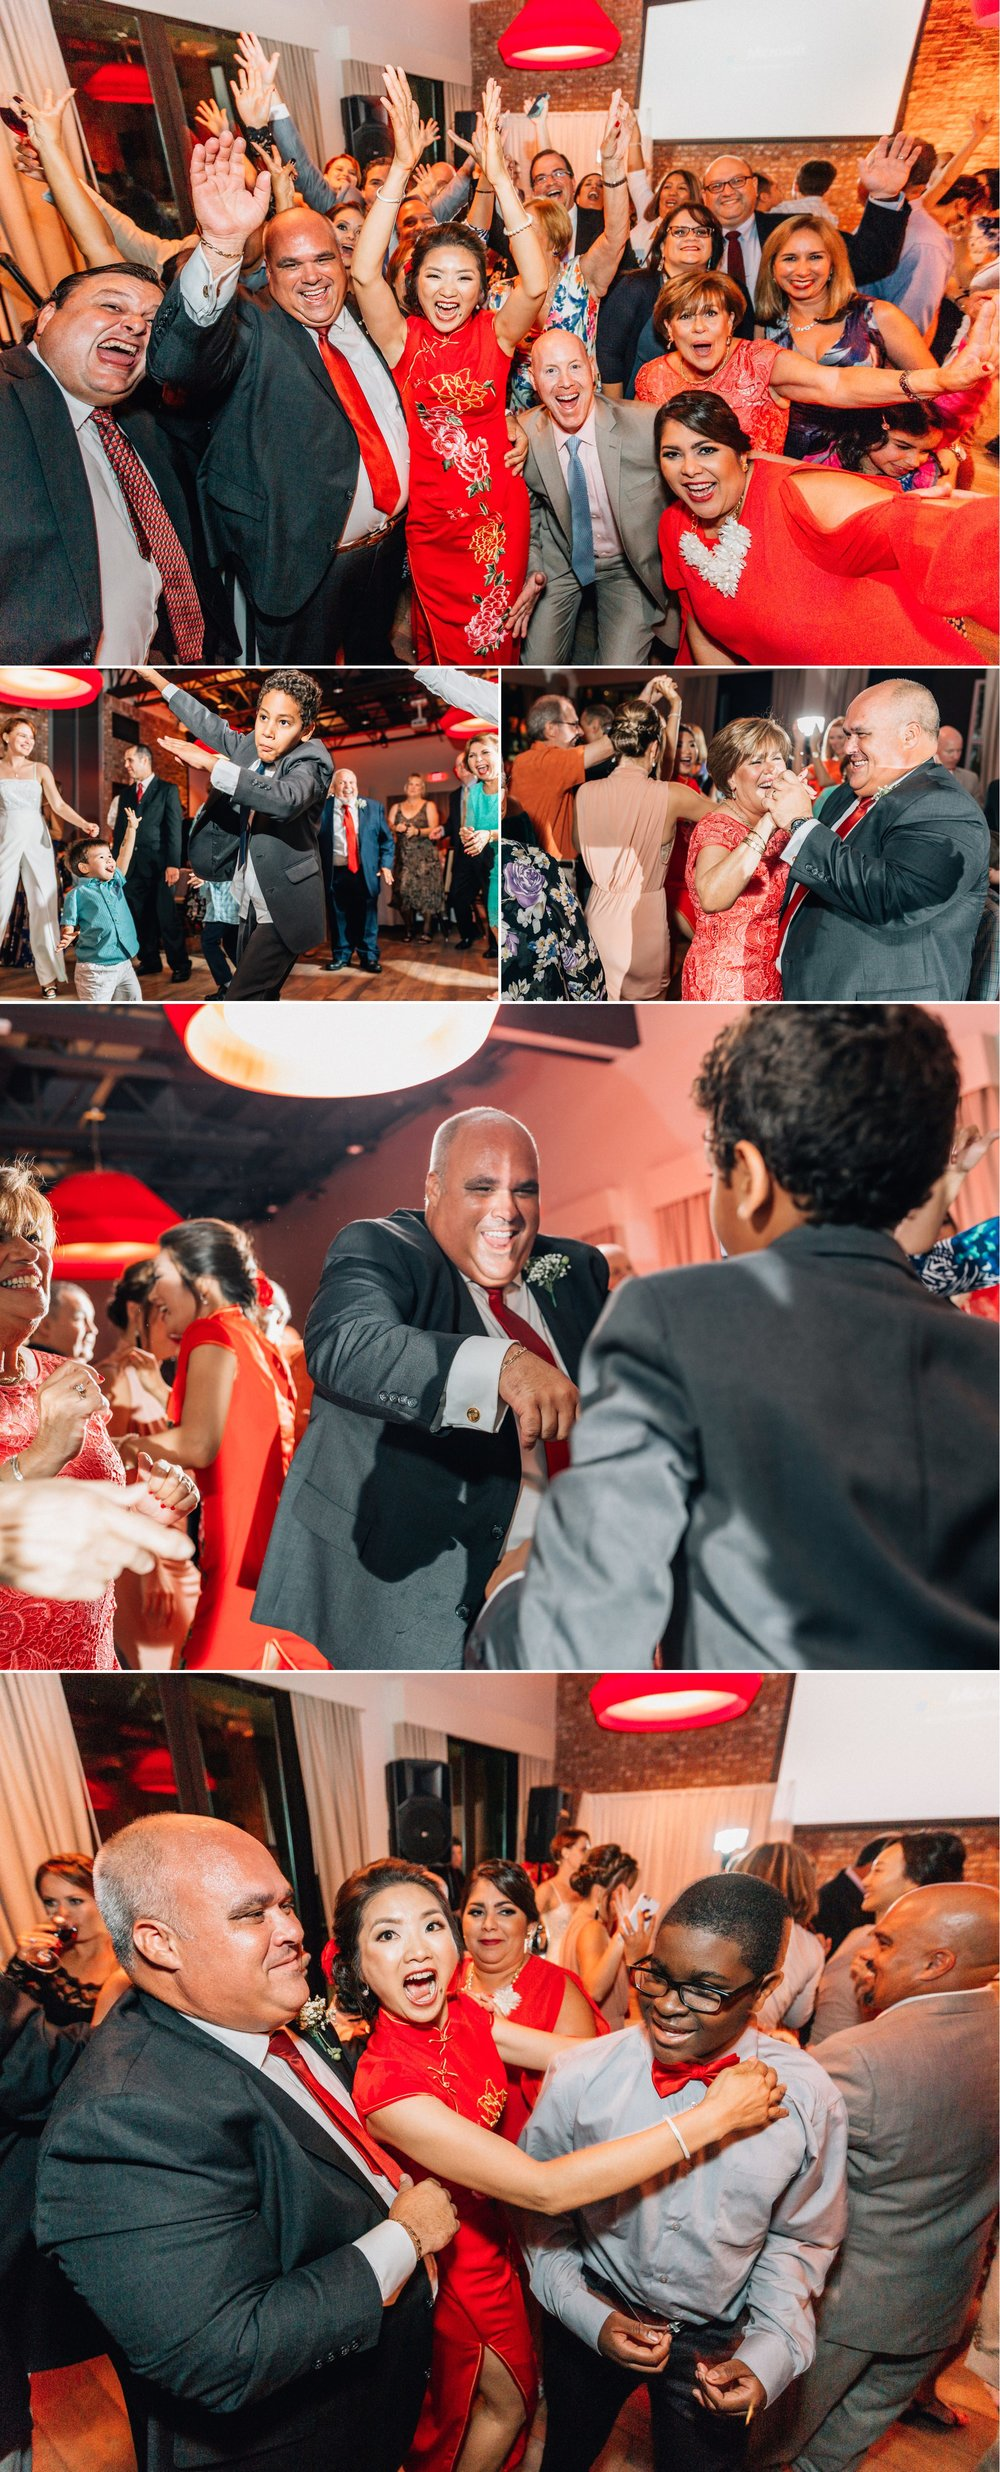 Lakehouse Lake Nona Wedding- Modern Colorful Red Multicultural- Susan + Manolo 46.jpg